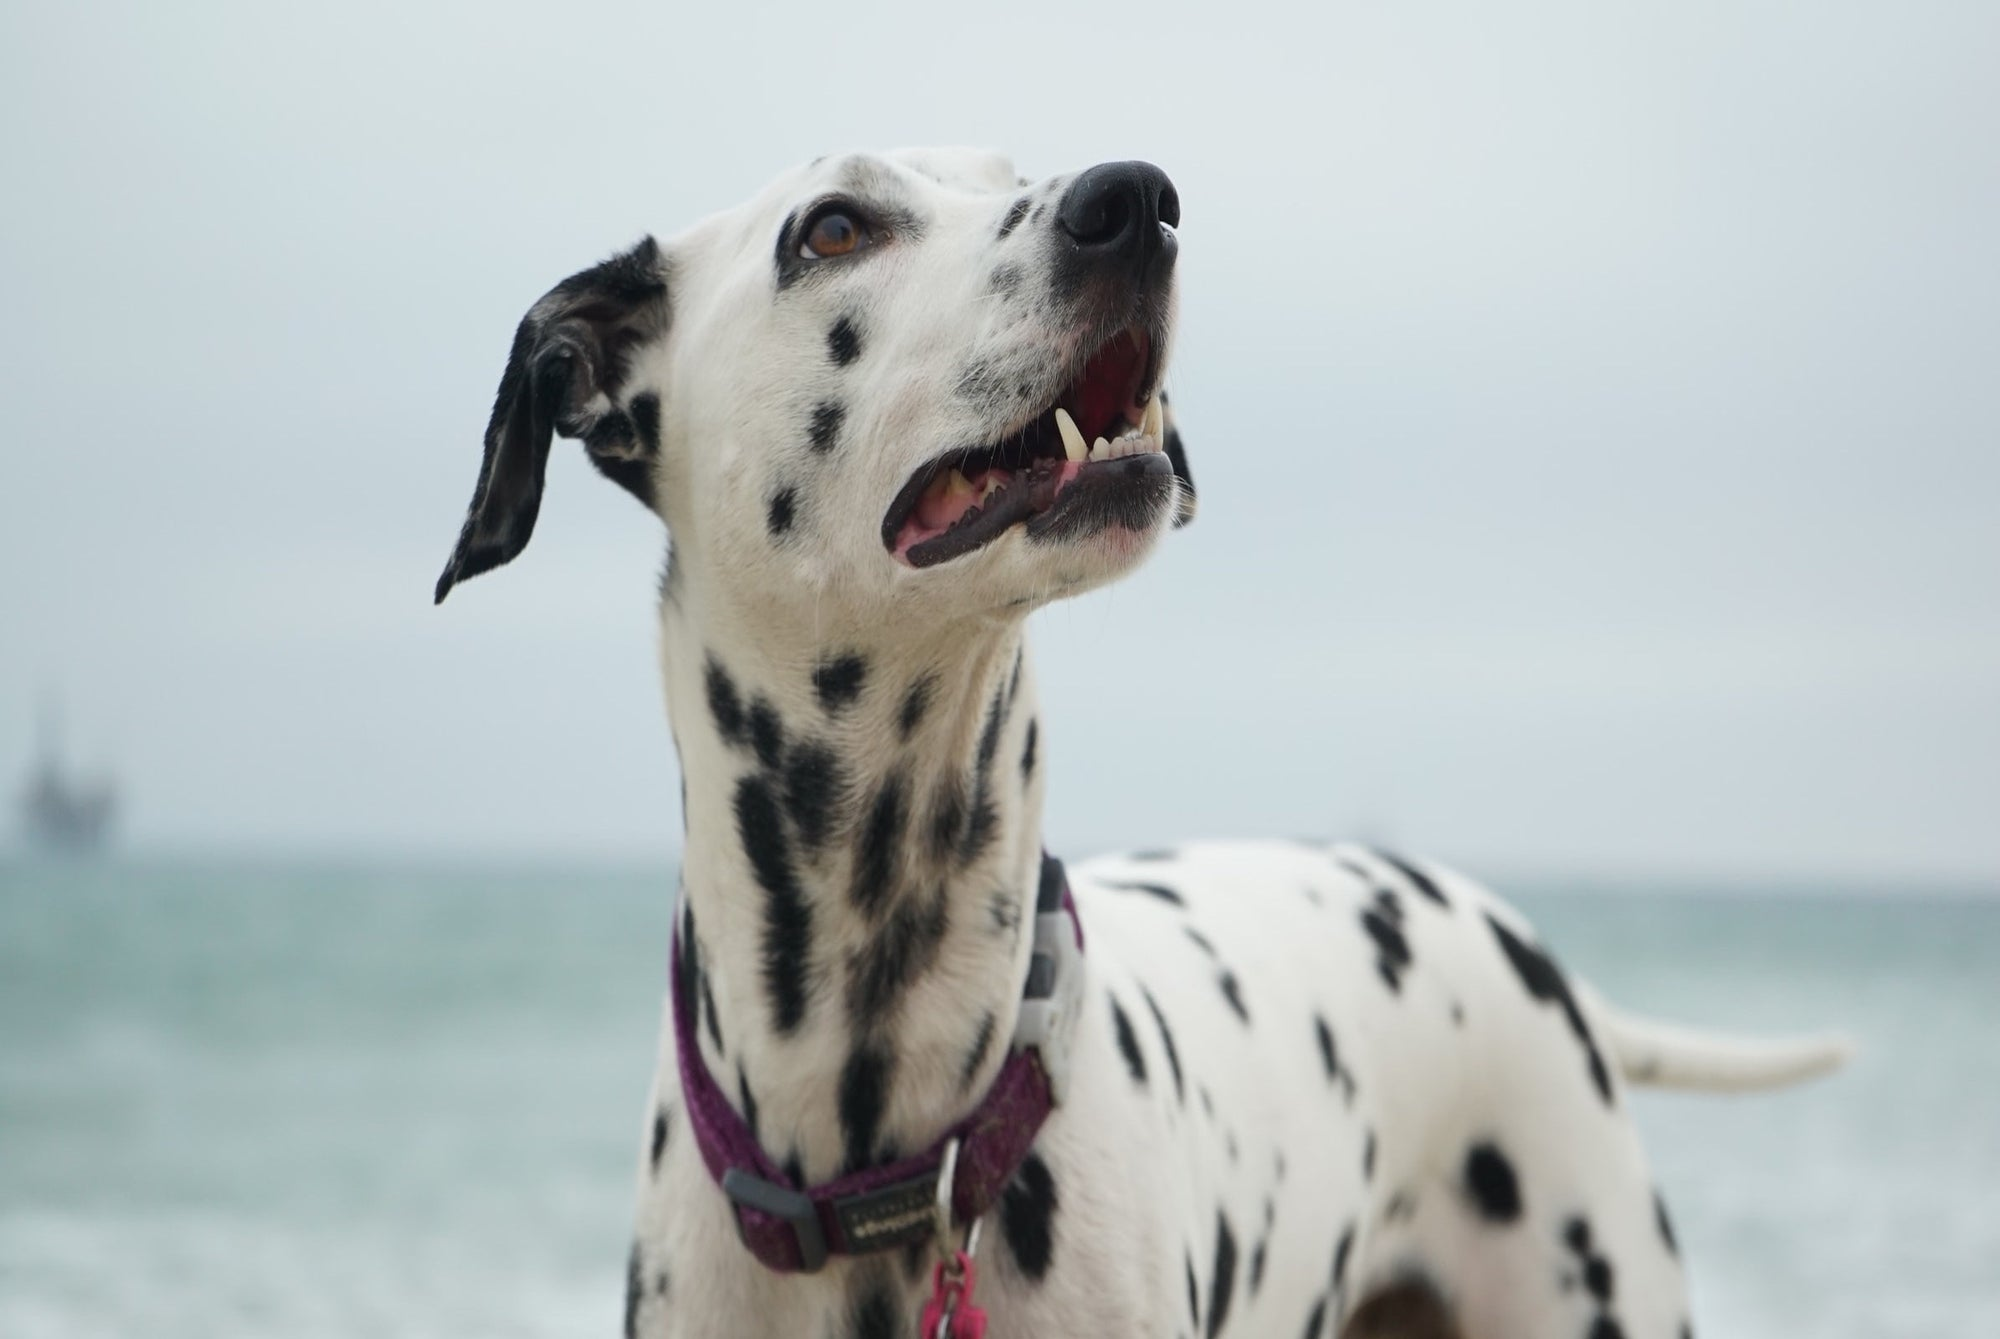 dalmatian-dog-on-the-beach-getting-ready-to-go-running